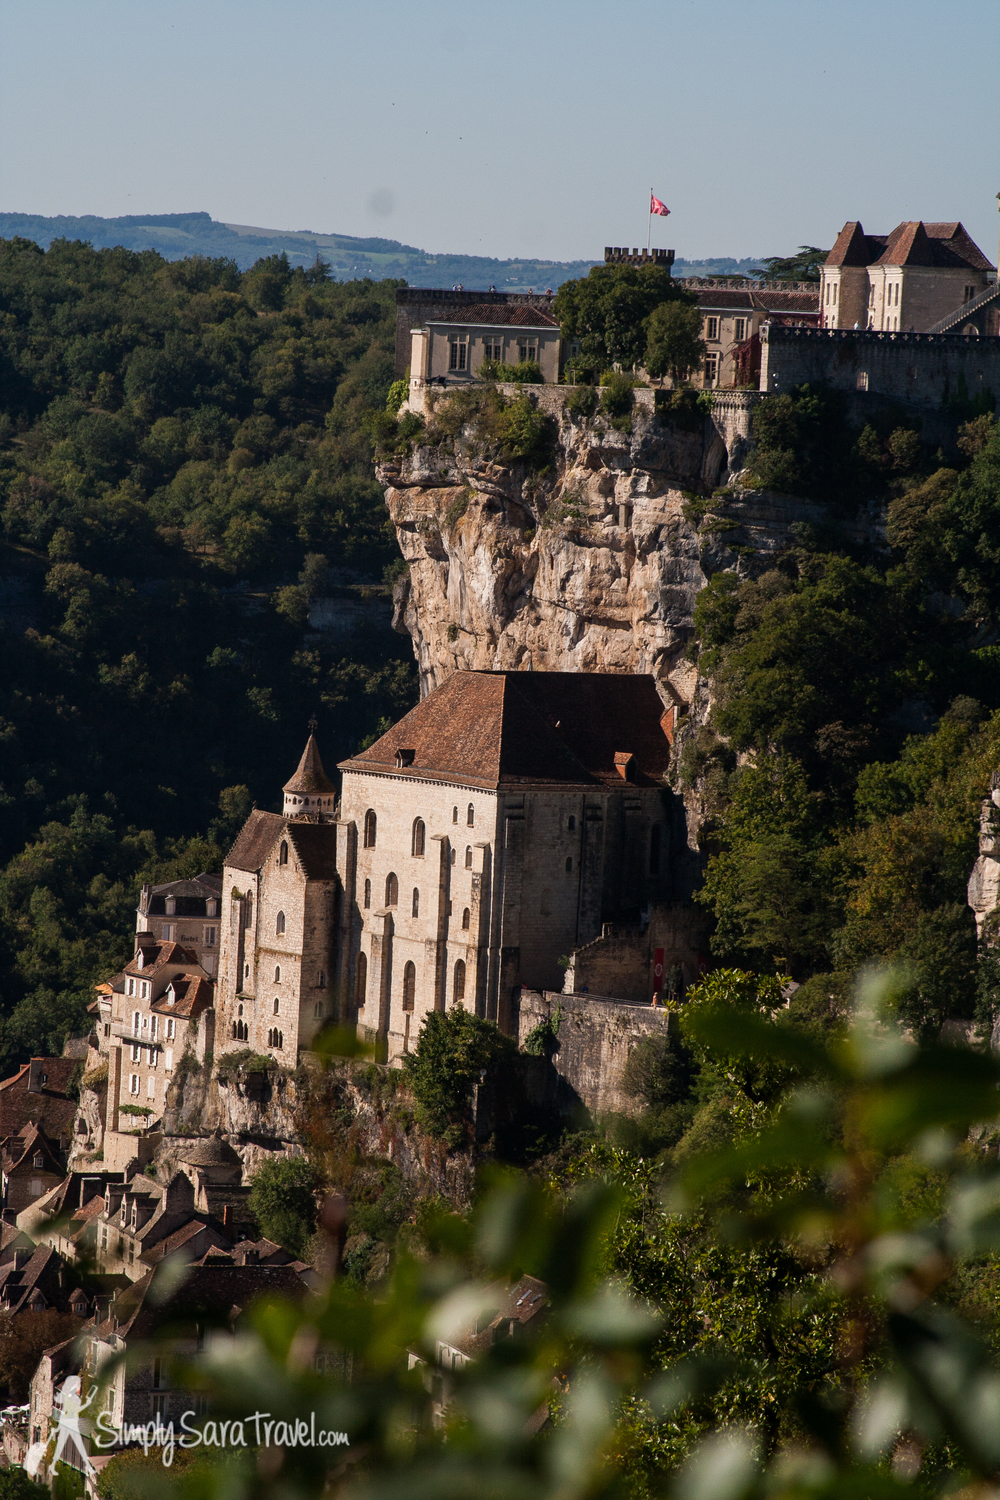 Approaching Rocamadour